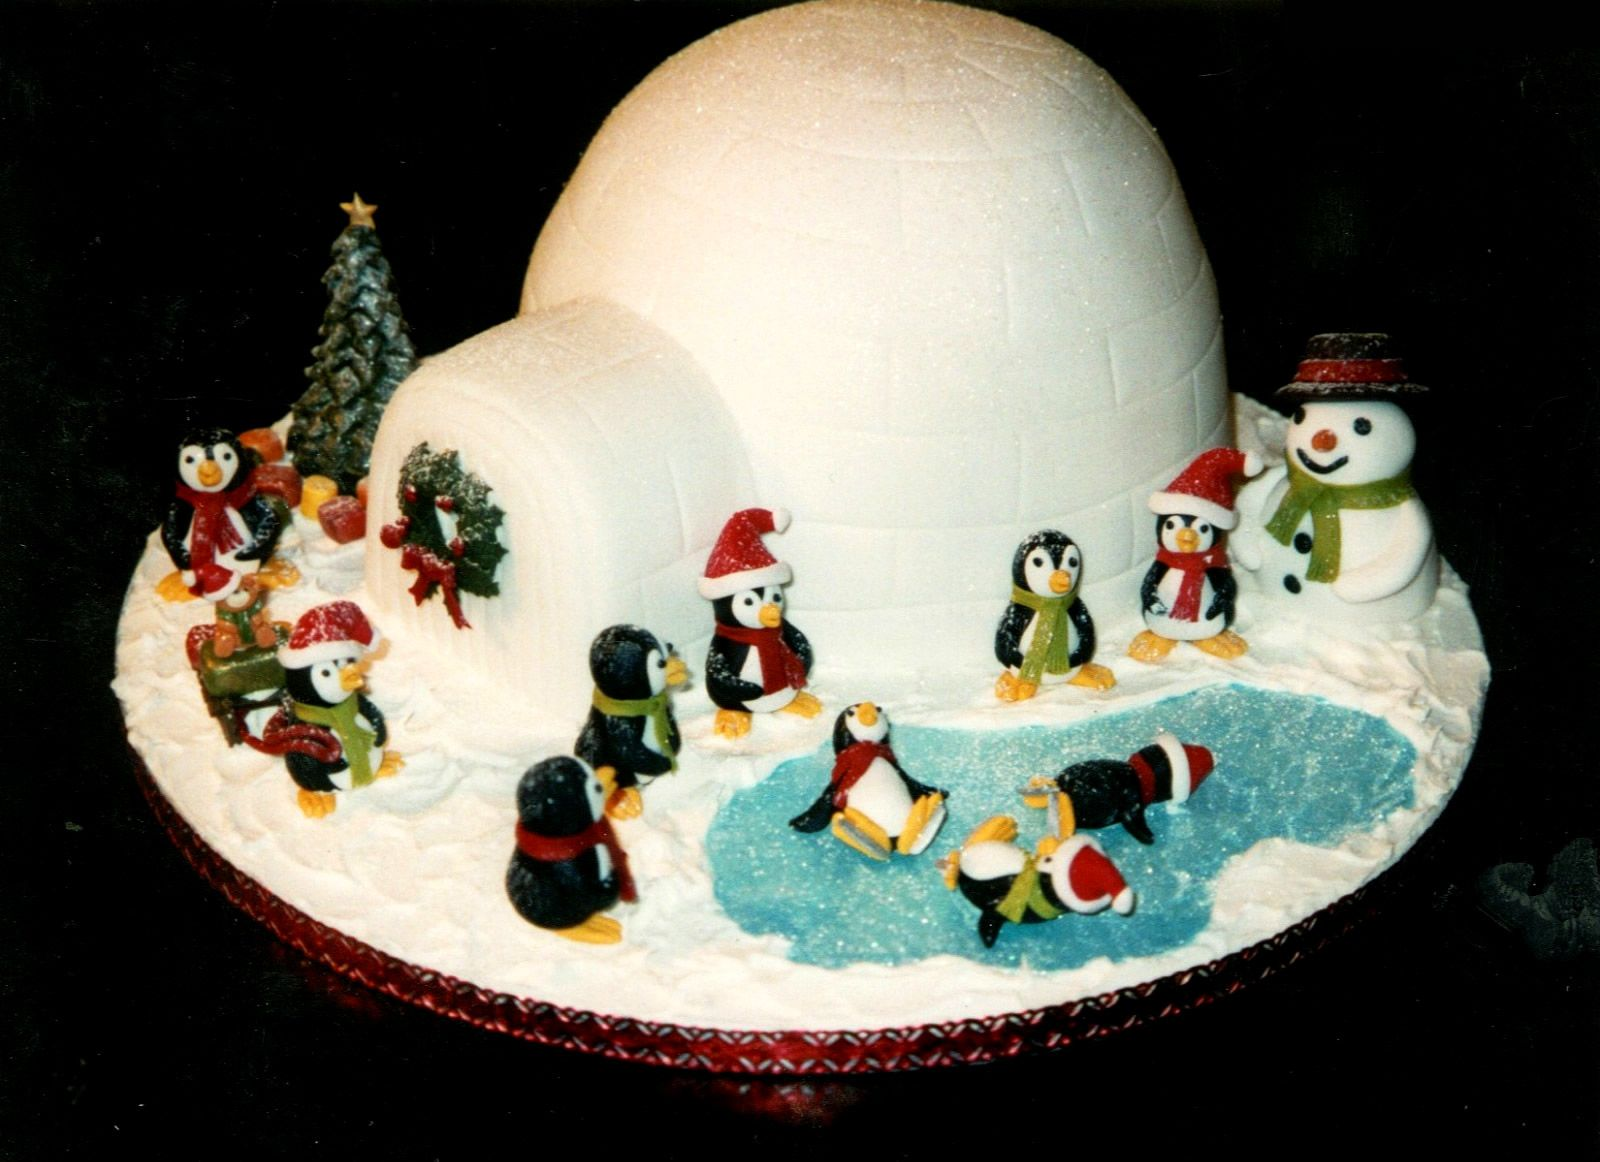 Christmas Cake Ideas With Penguins : Penguins With Igloo Christmas Cake This Is Found In For ...